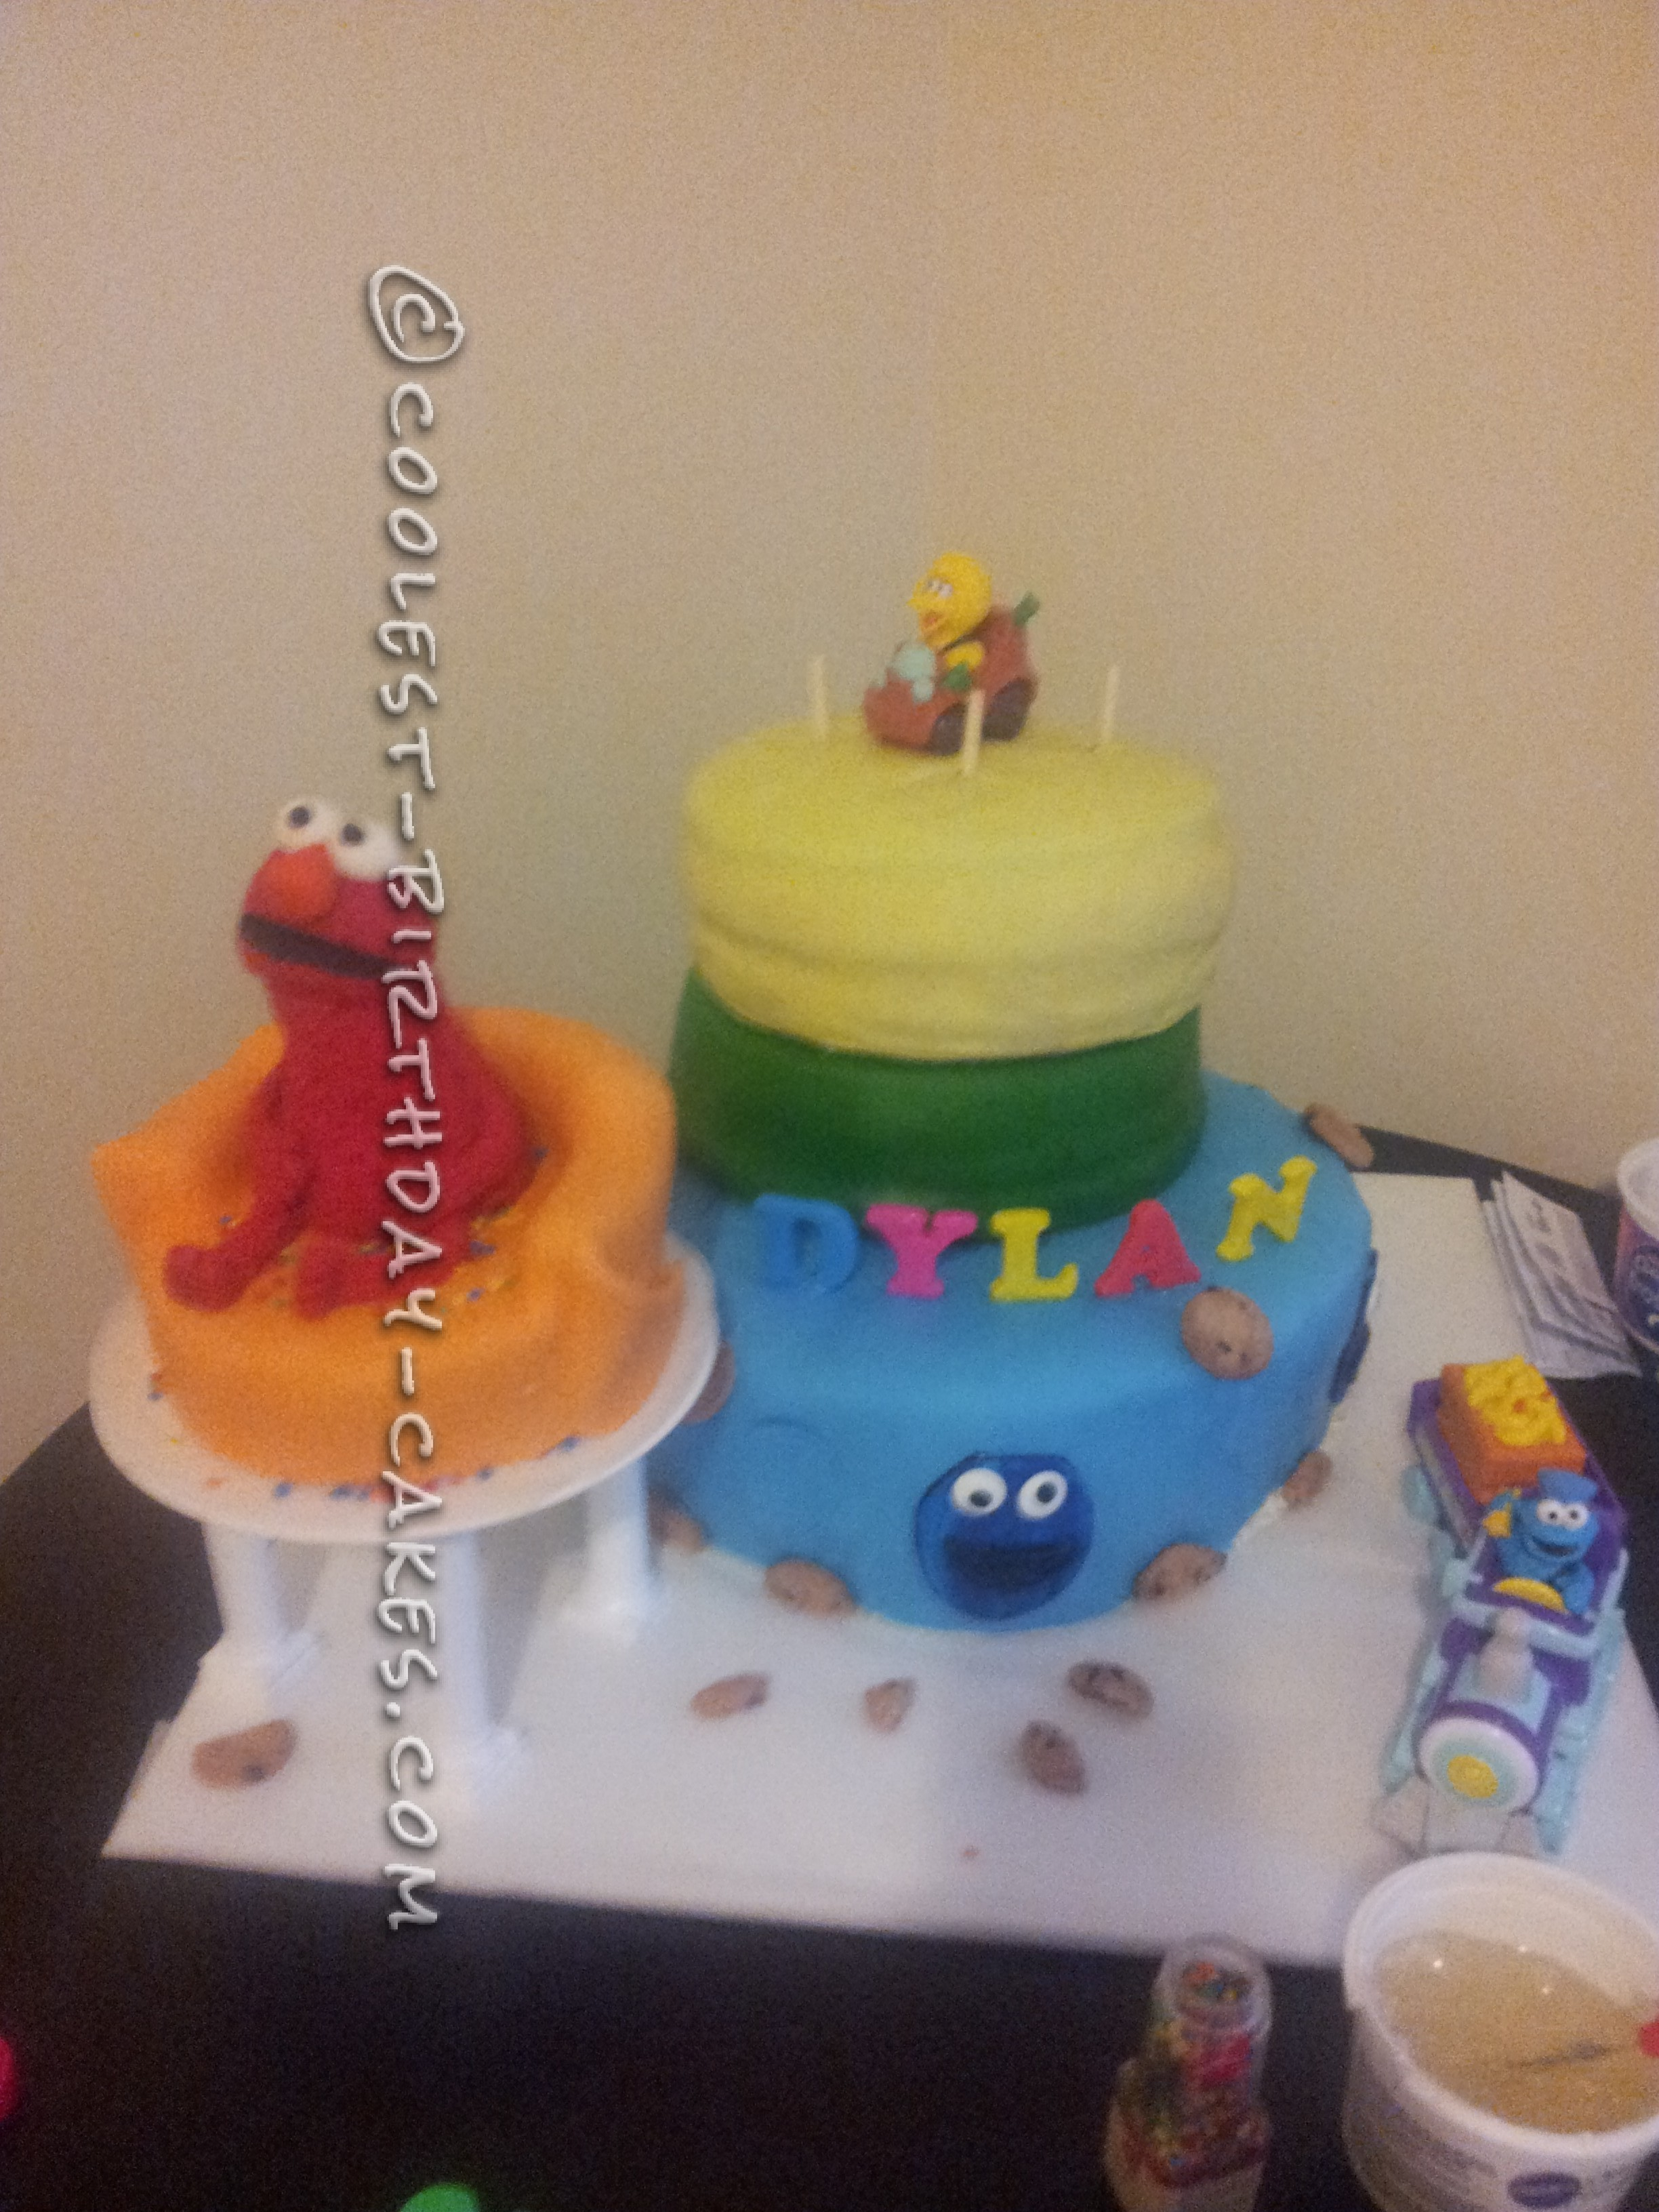 Sensational Awesome Sesame Street Birthday Cake For A 2 Year Old Boy Funny Birthday Cards Online Hendilapandamsfinfo